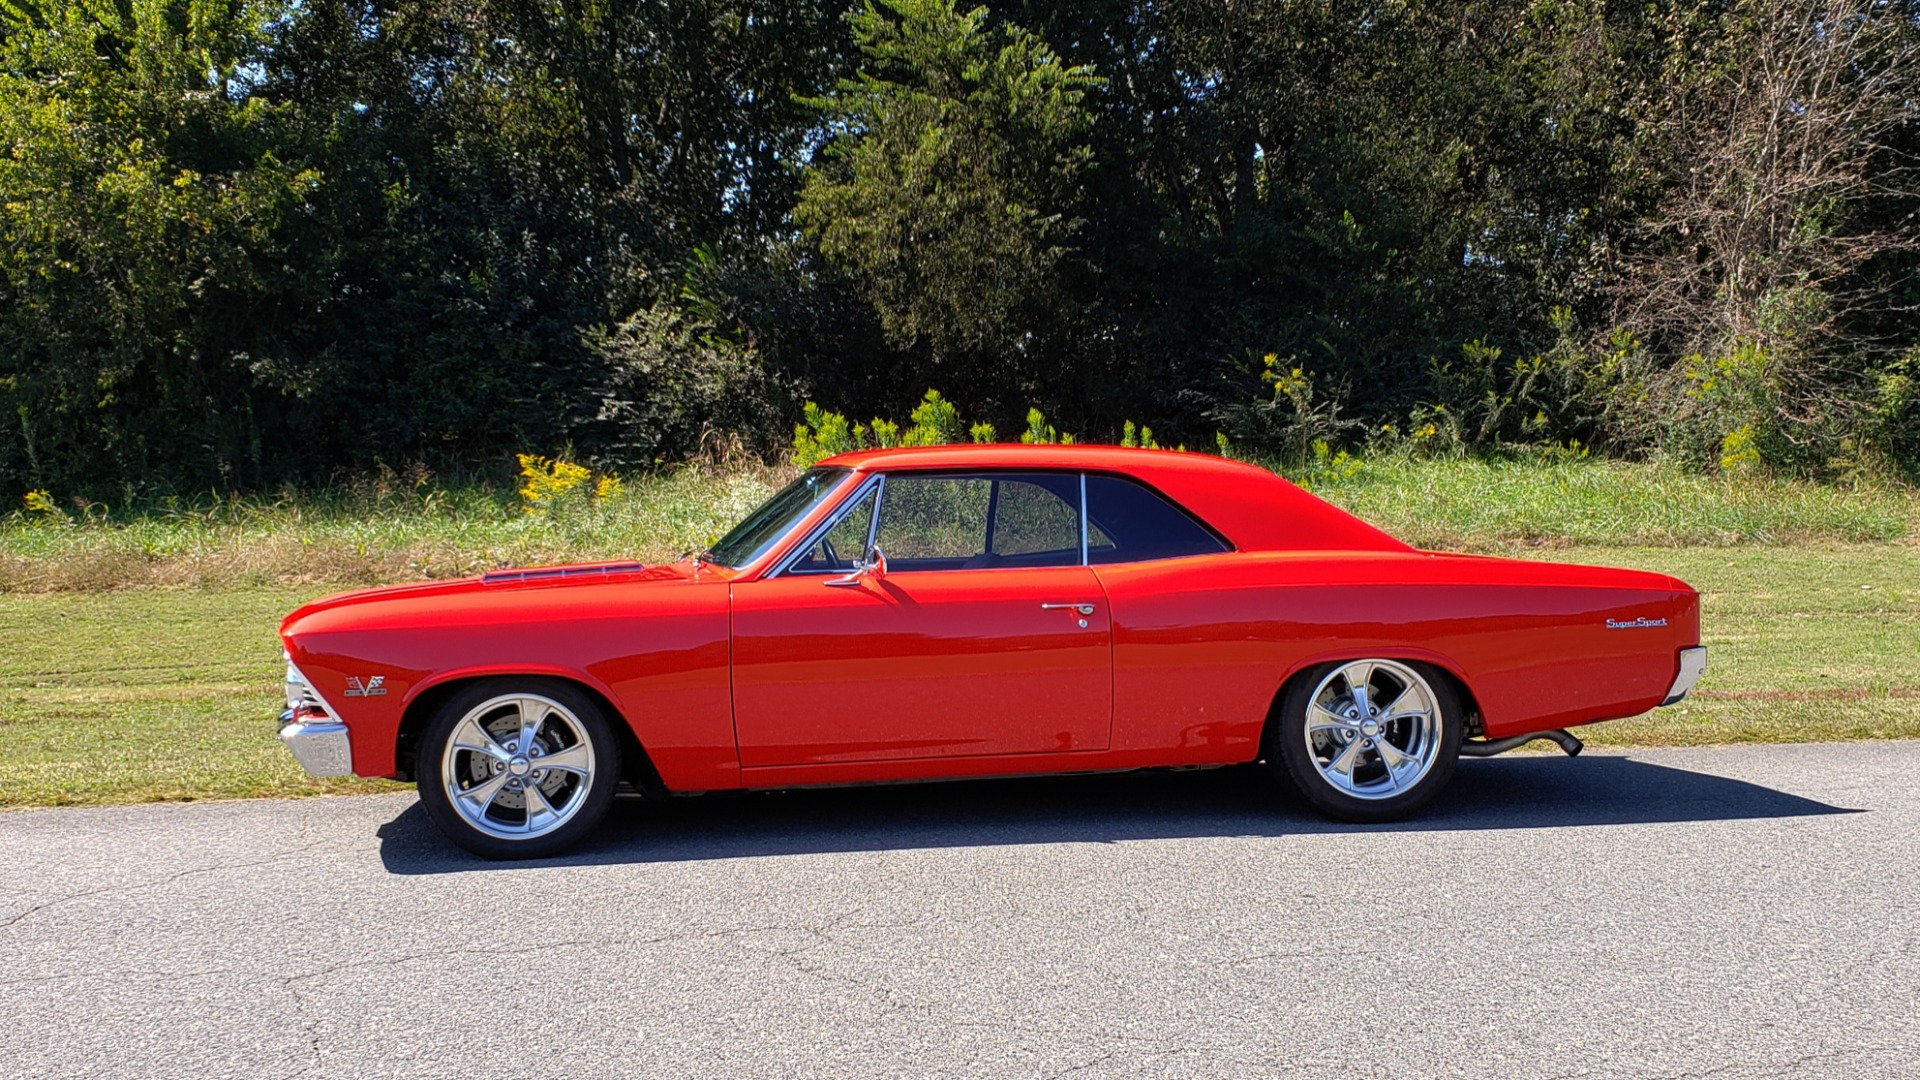 Used 1966 Chevrolet CHEVELLE SS 396 CUSTOM RESTO-MOD / 4-SPEED MANUAL / 12-BOLT REAR for sale $74,999 at Formula Imports in Charlotte NC 28227 6